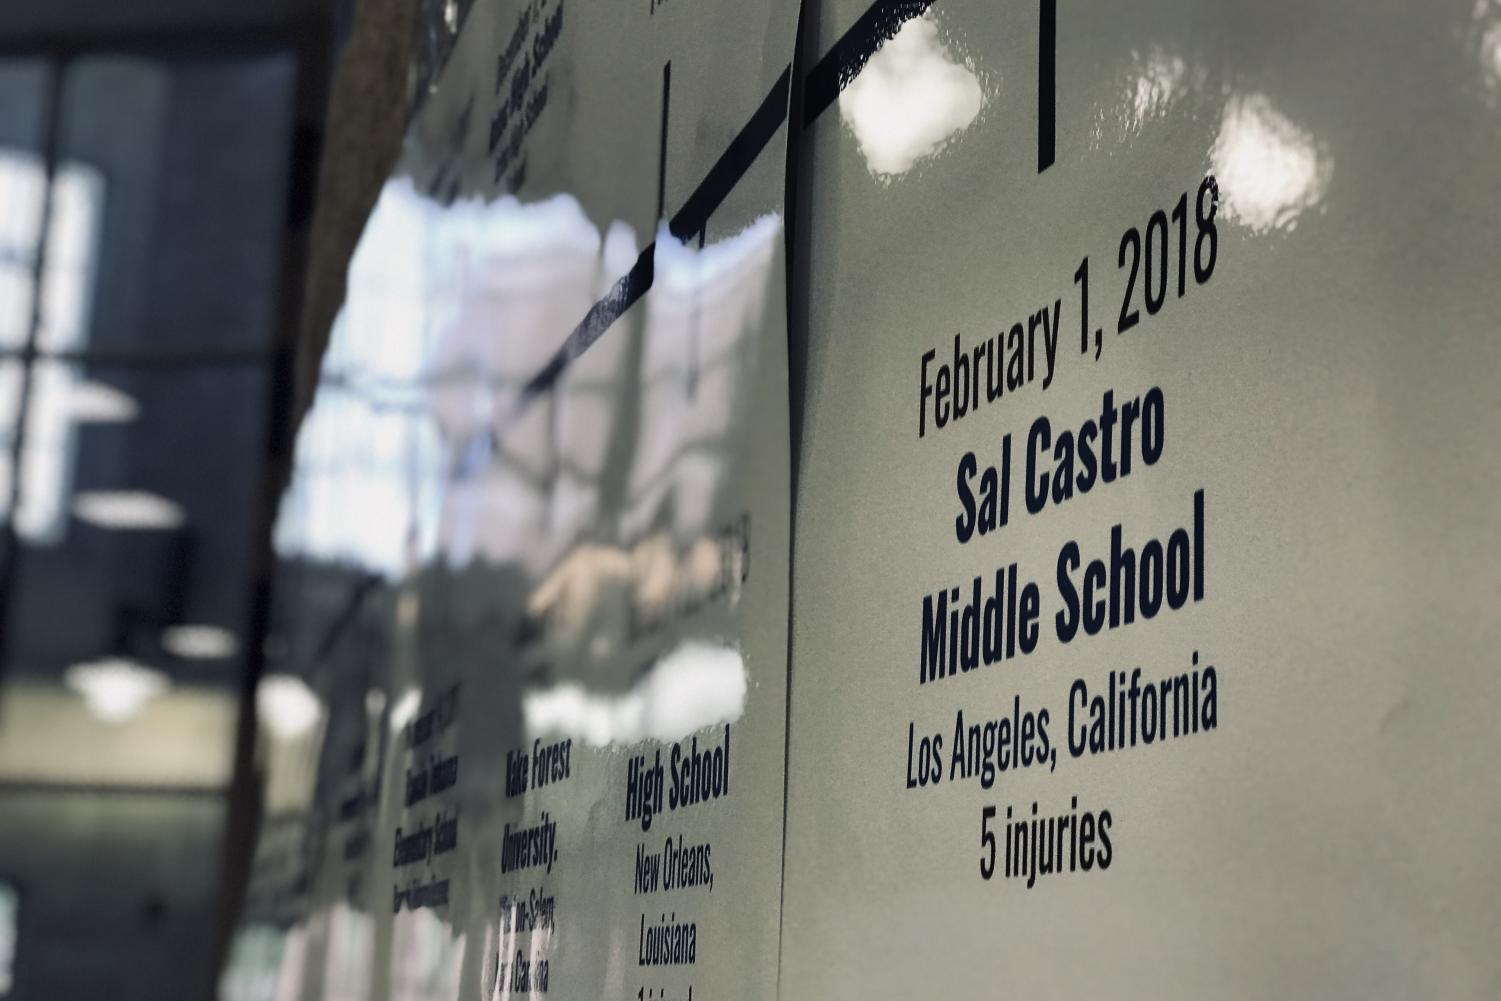 A list of past school shootings surround the front entrance of the school. The committee took responsibility in creating this list to promote its block lunch event.